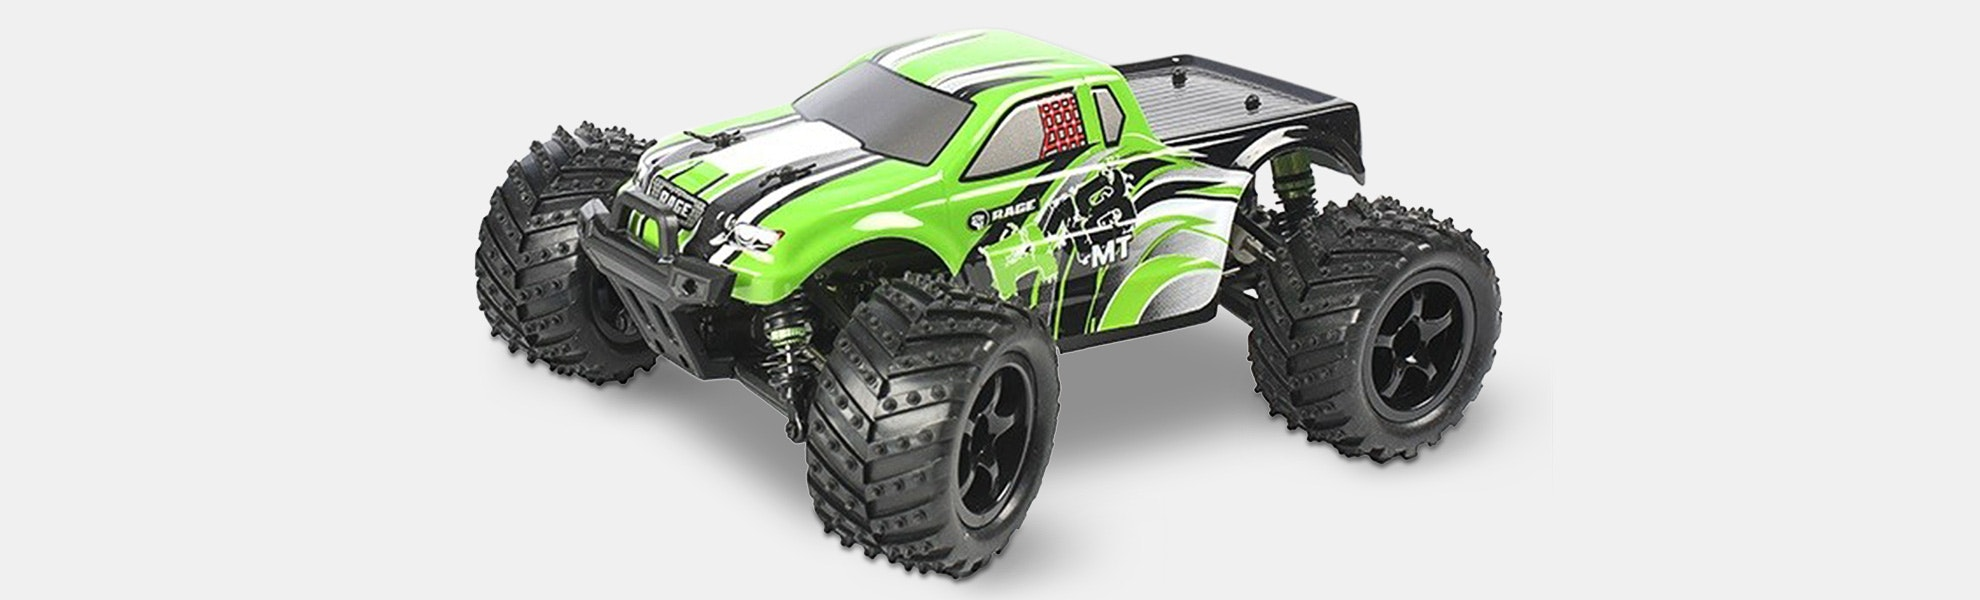 Rage R18MT 1/18 Scale Monster Truck RTR